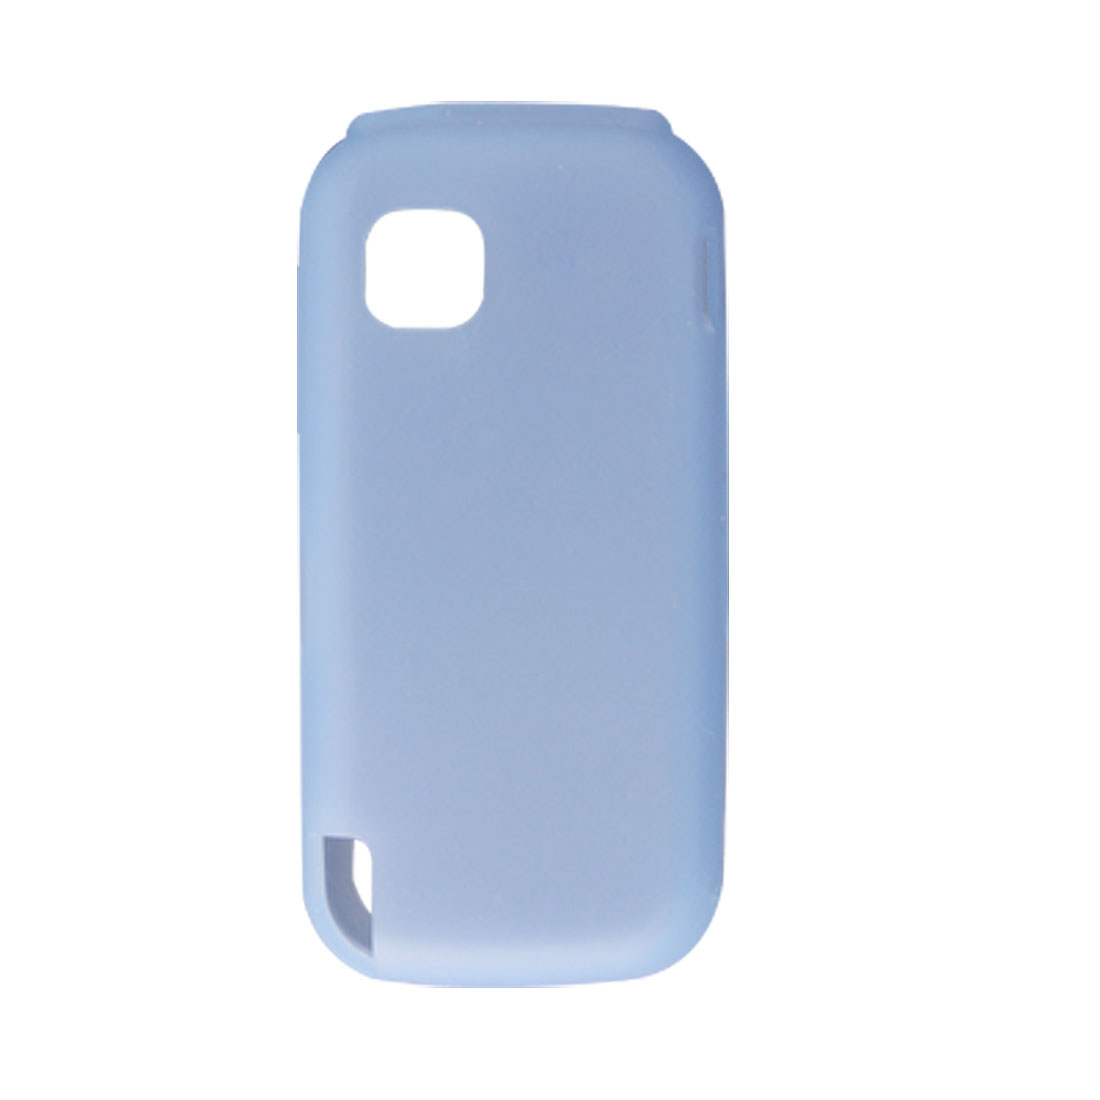 Baby Blue Soft Silicone Skin Case Cover for Nokia 5230